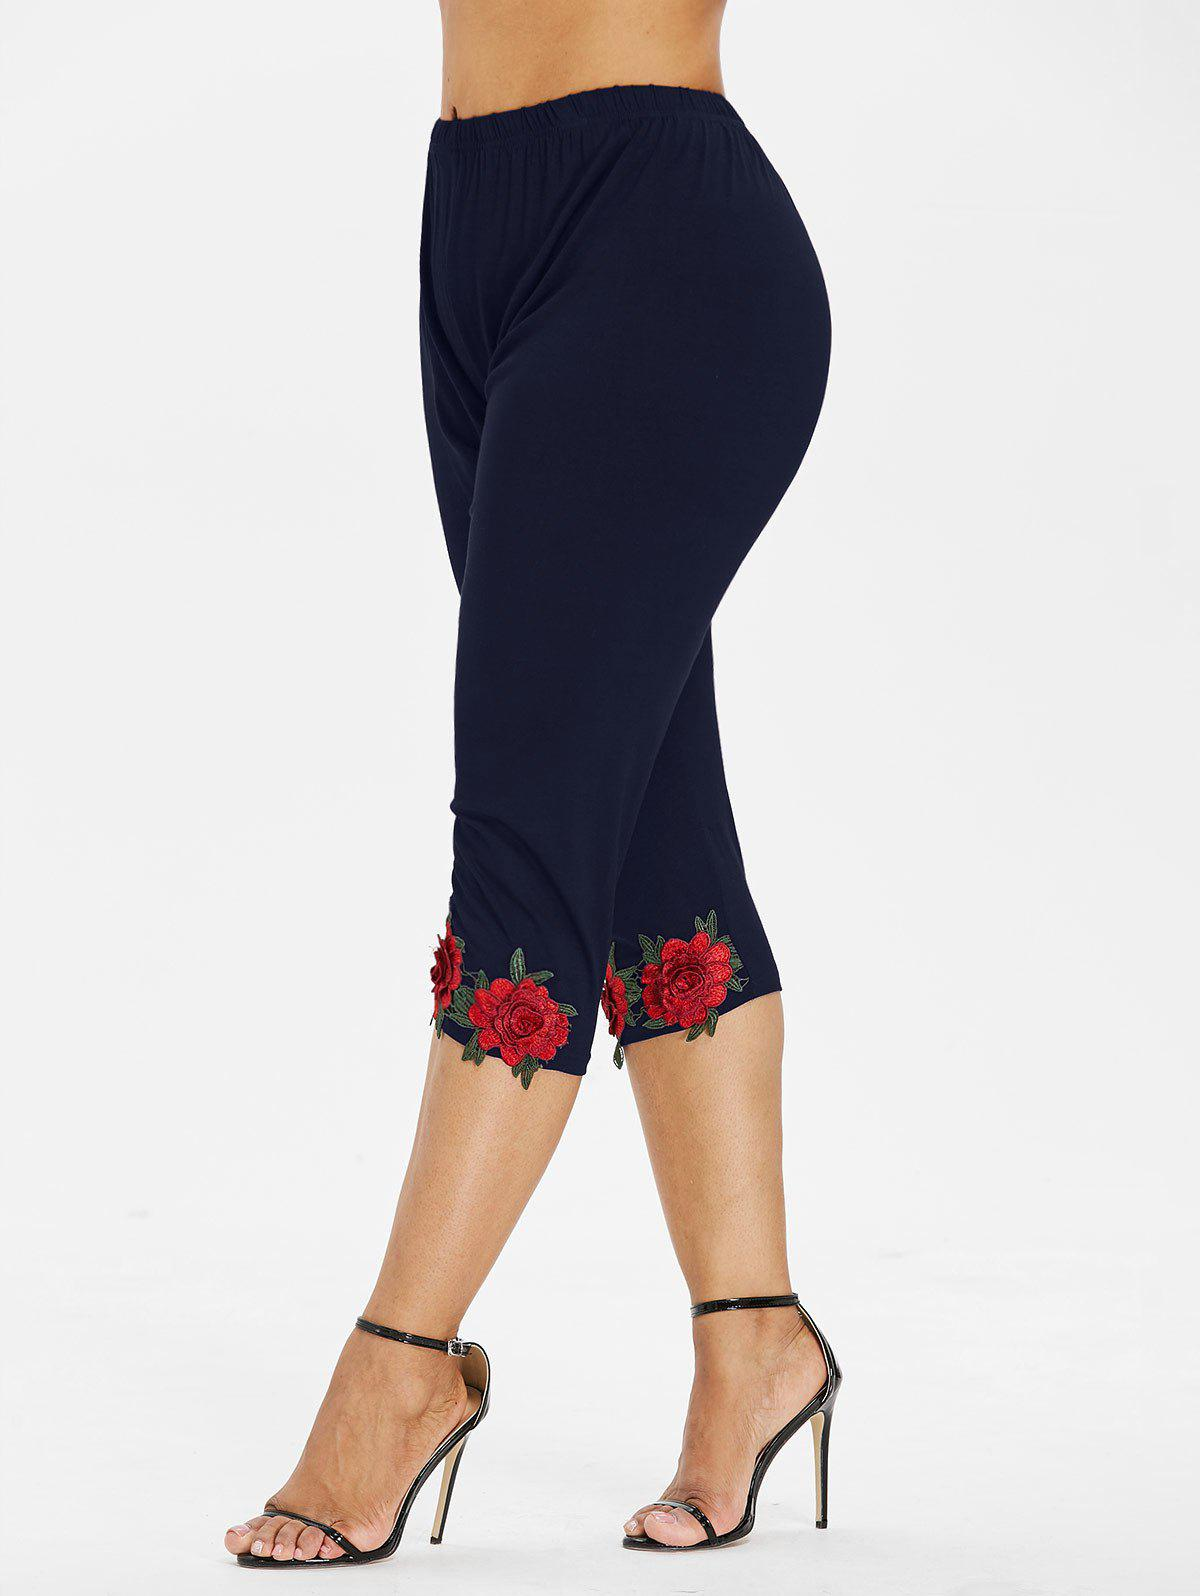 Fancy Plus Size Flower Applique Leggings